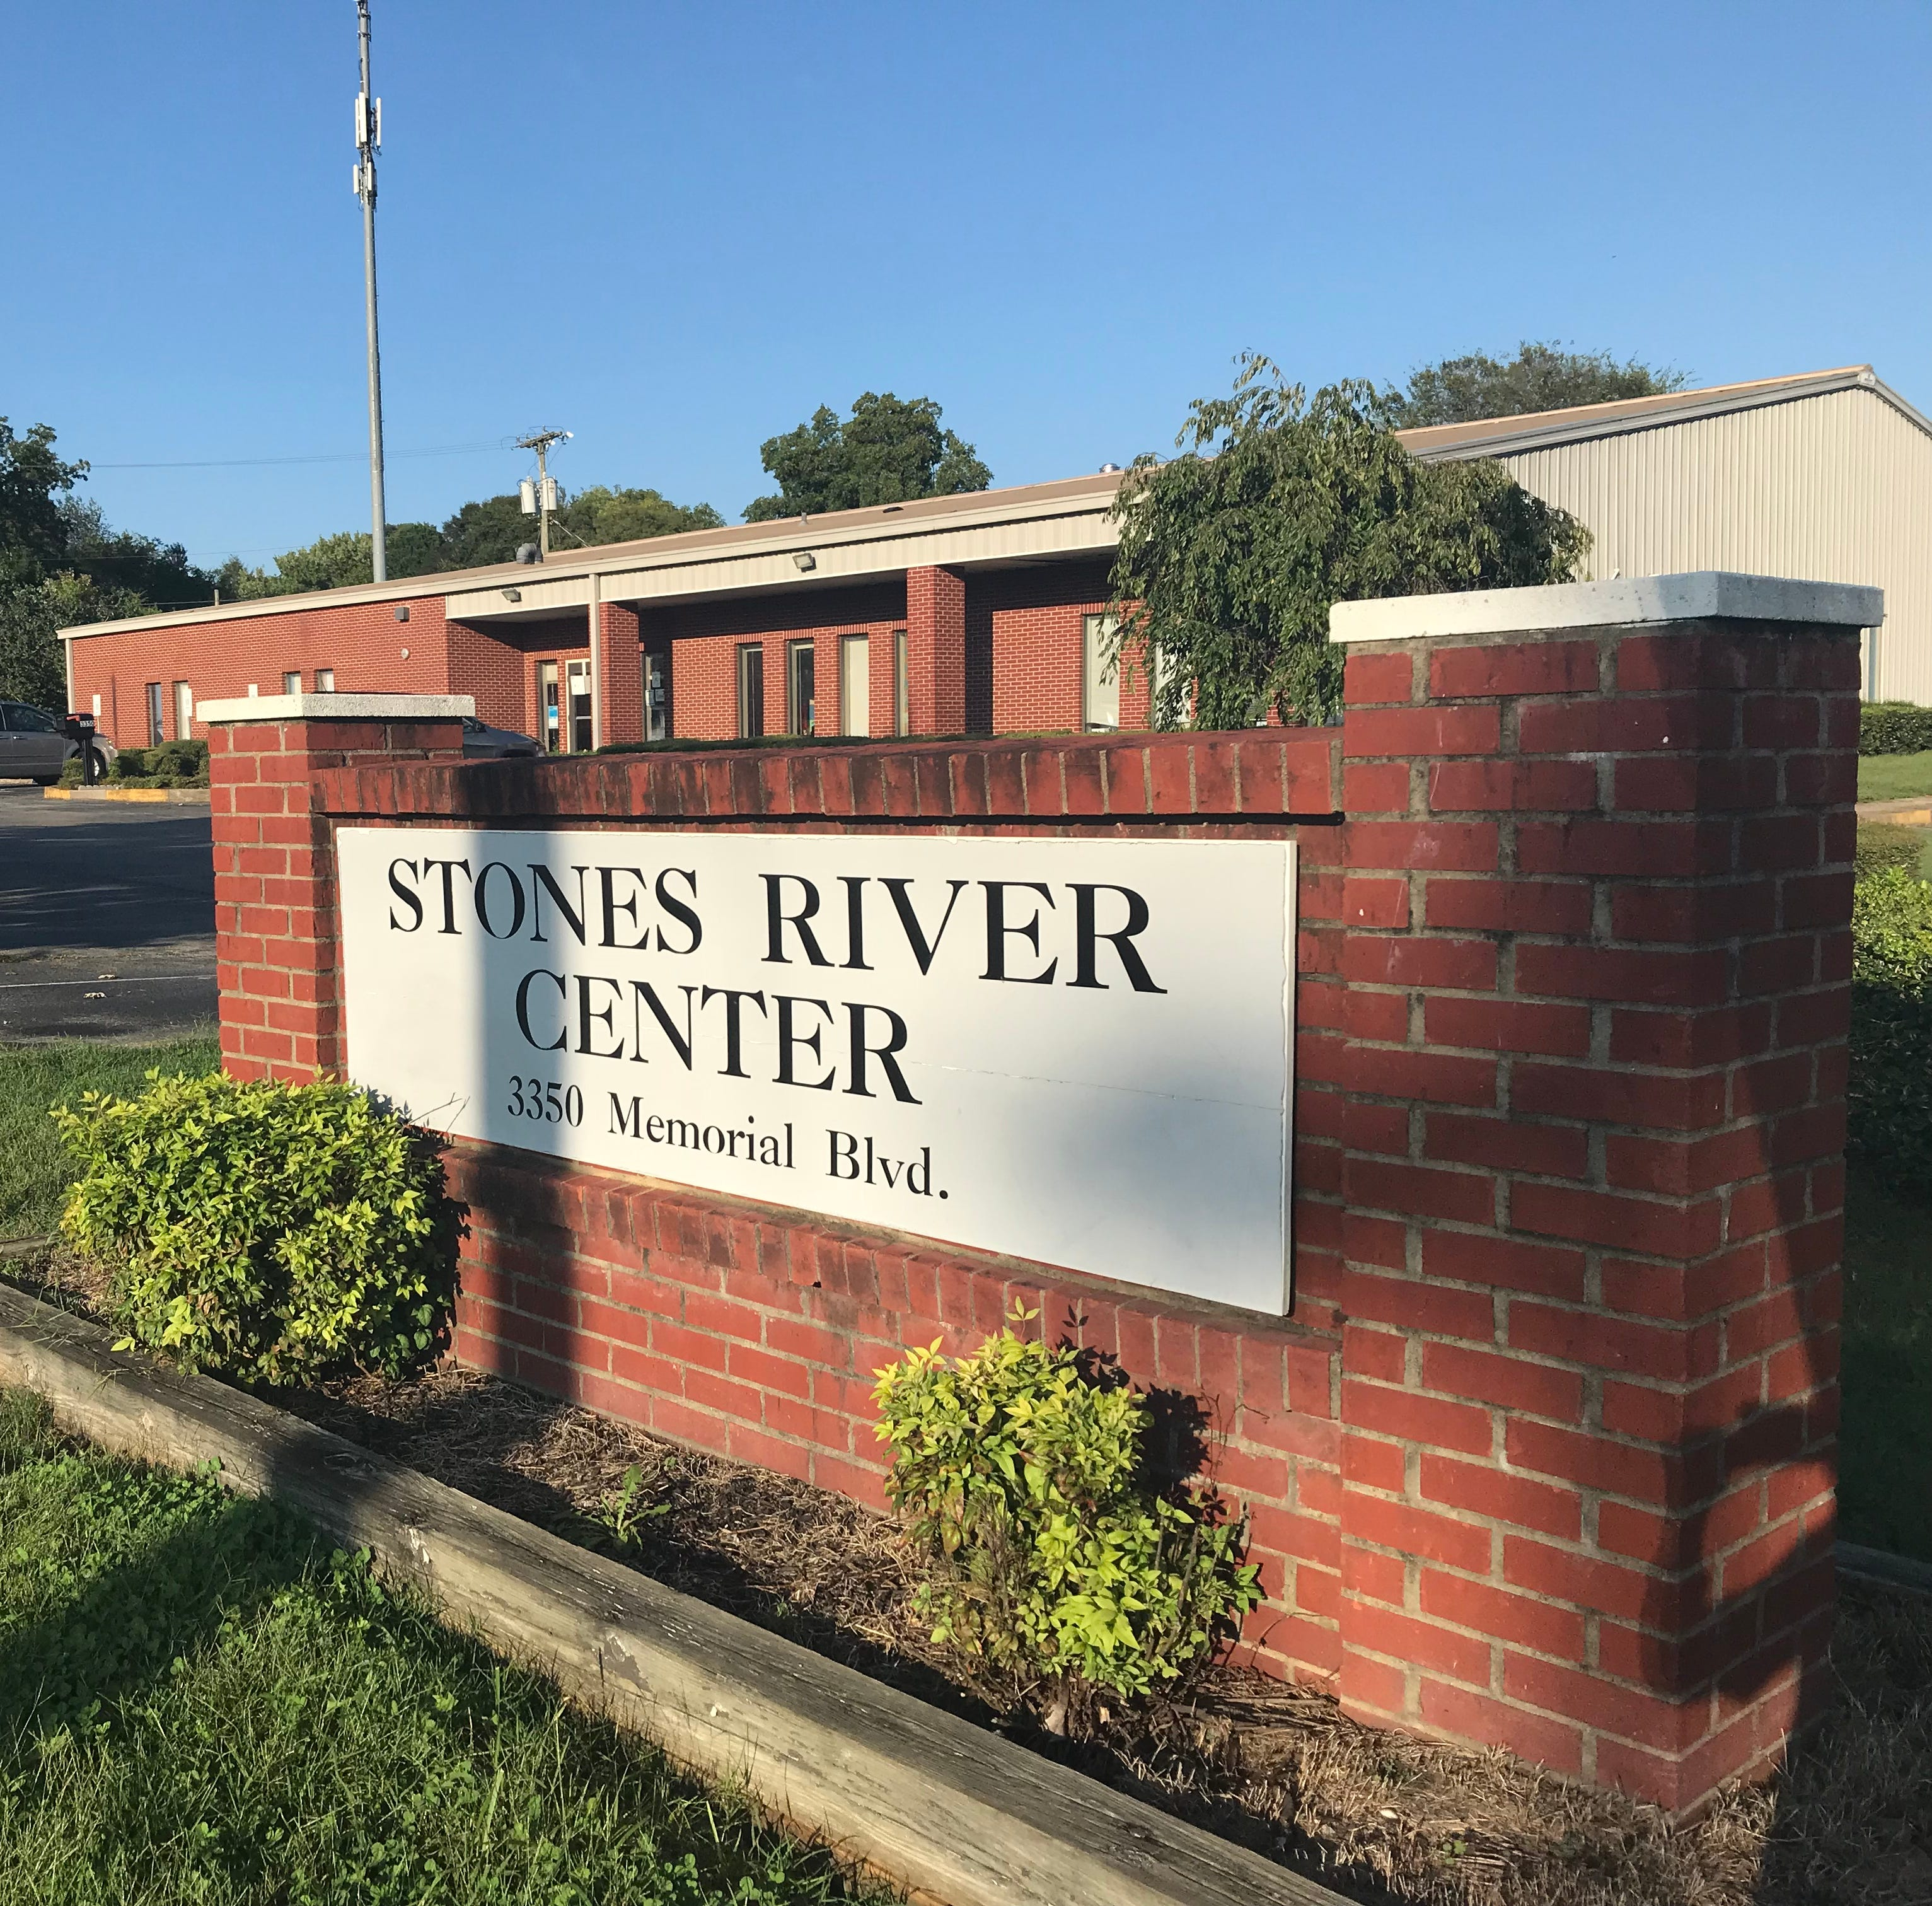 Spitting, shoving and marijuana: Stones River Center group homes investigated 72 times in 5 years